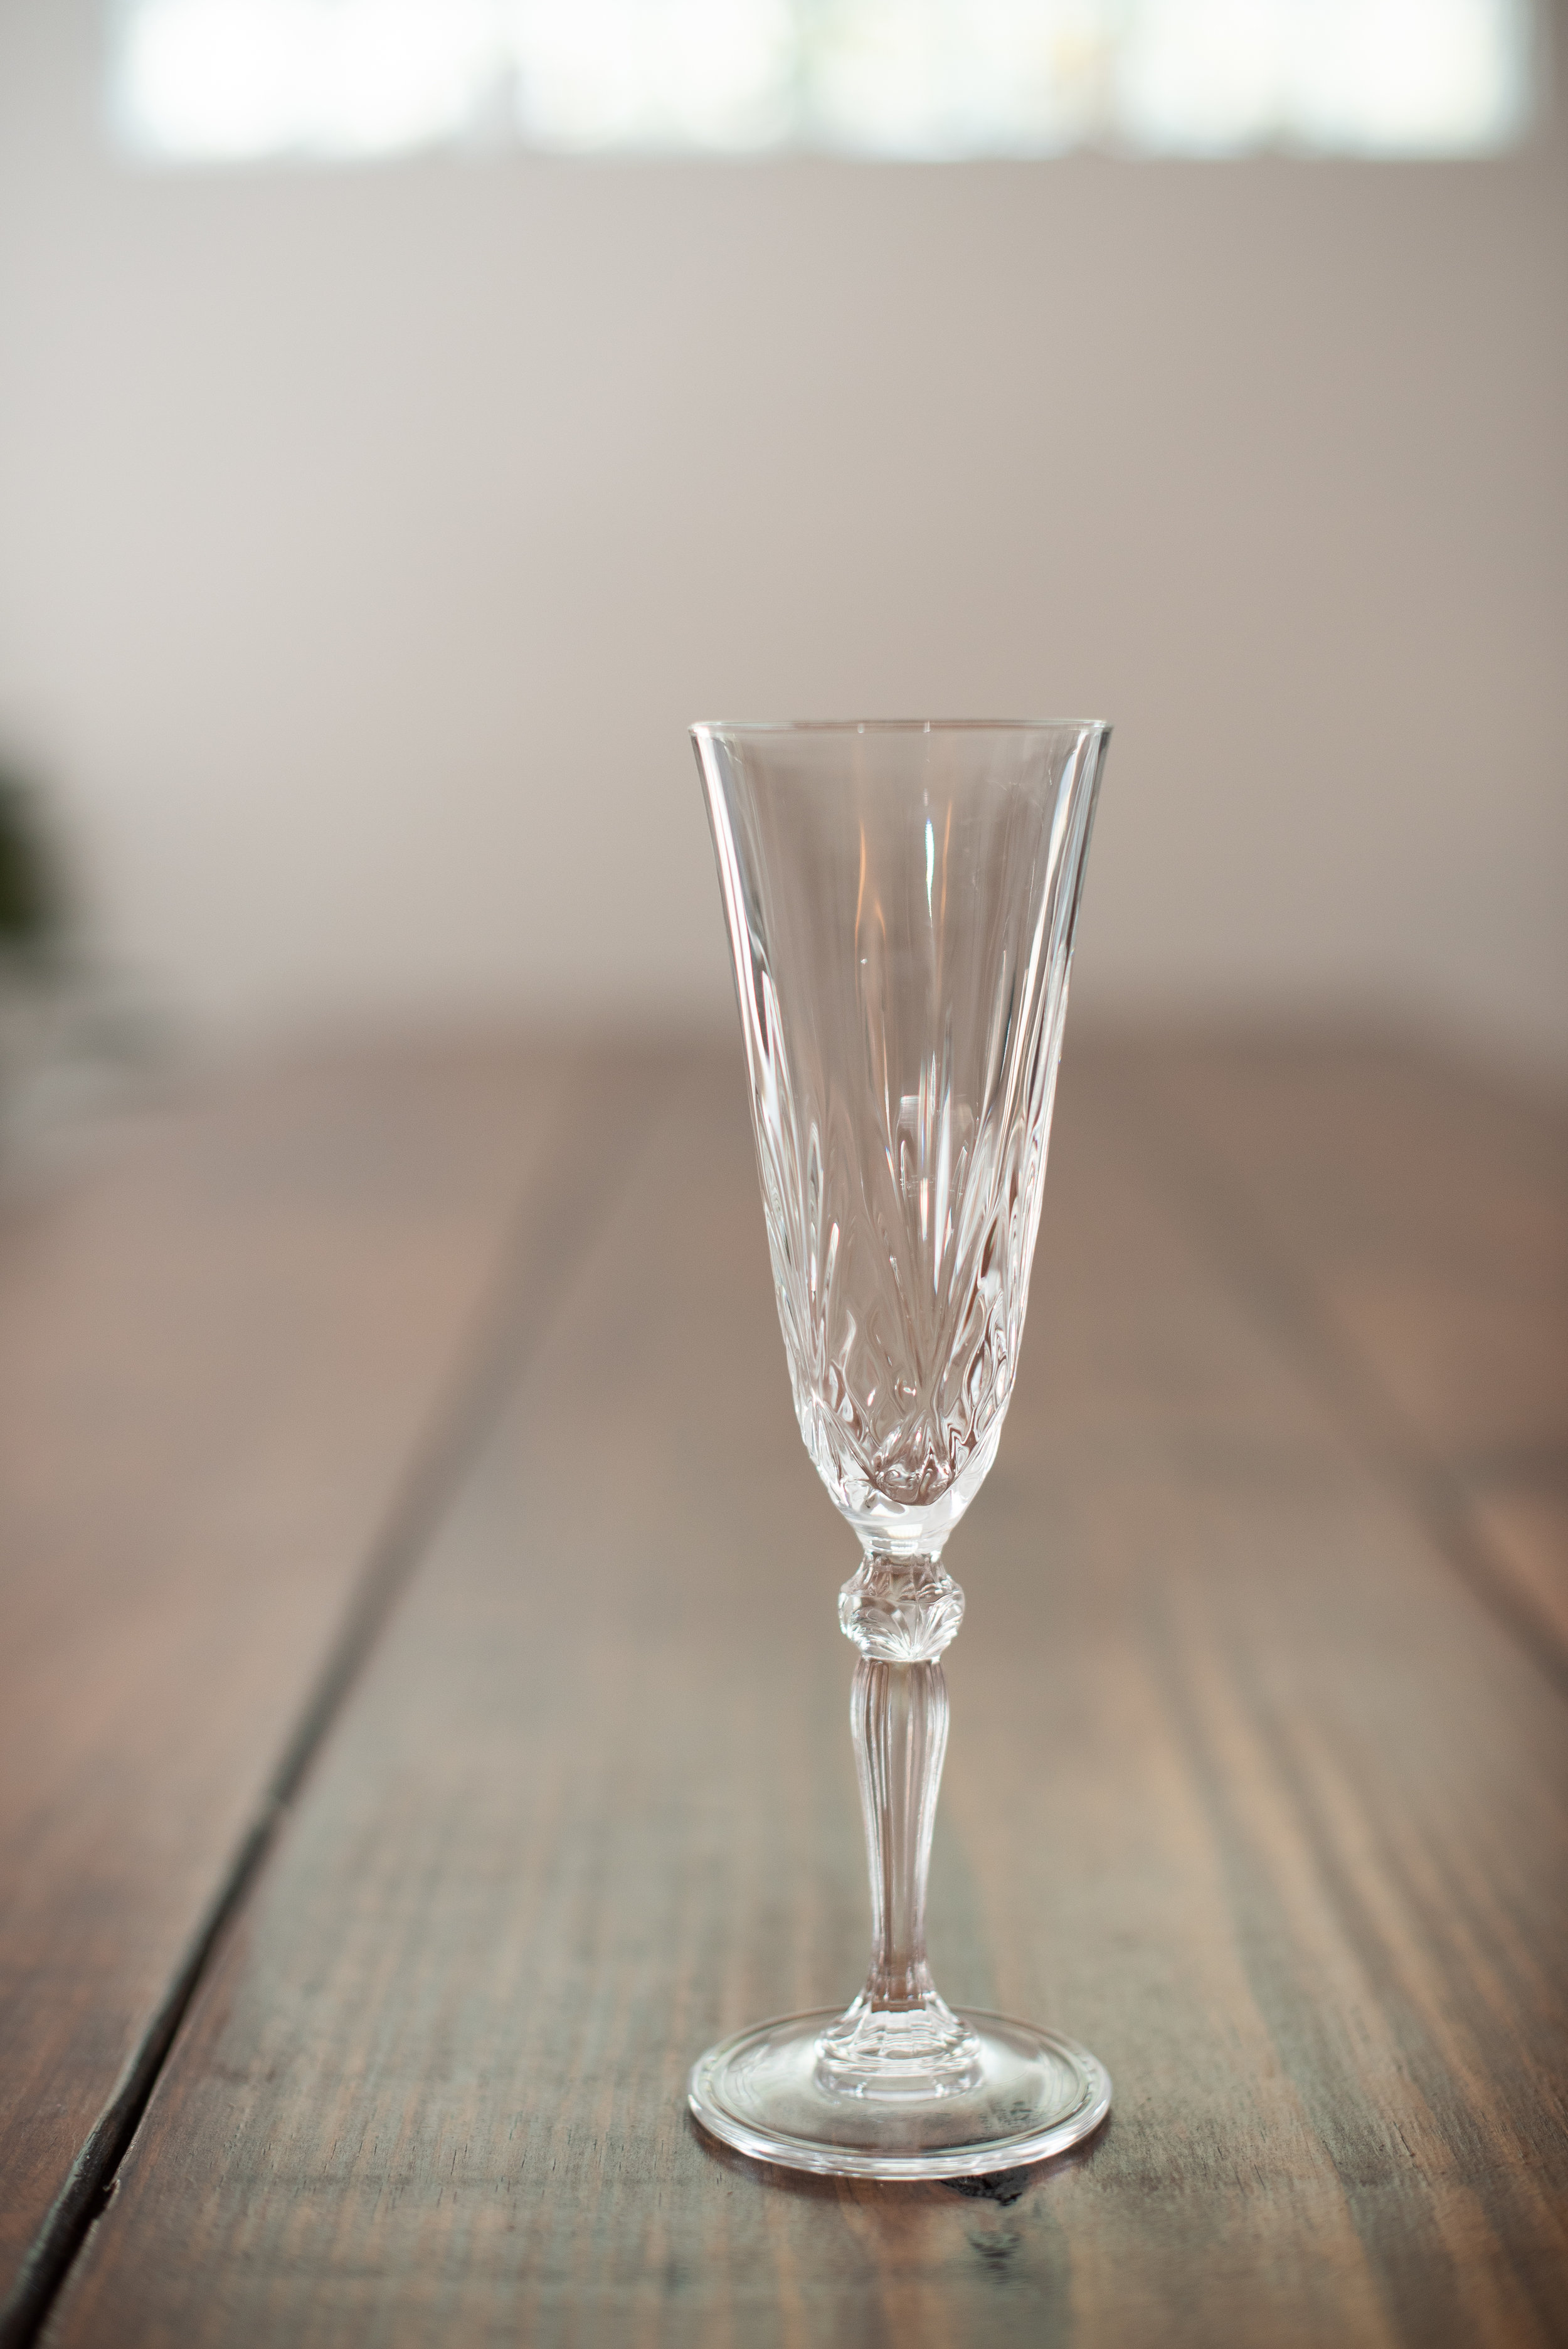 Crystal Champagne Flute   Size: 6 oz  Price: $1.50  Quantity available: 20